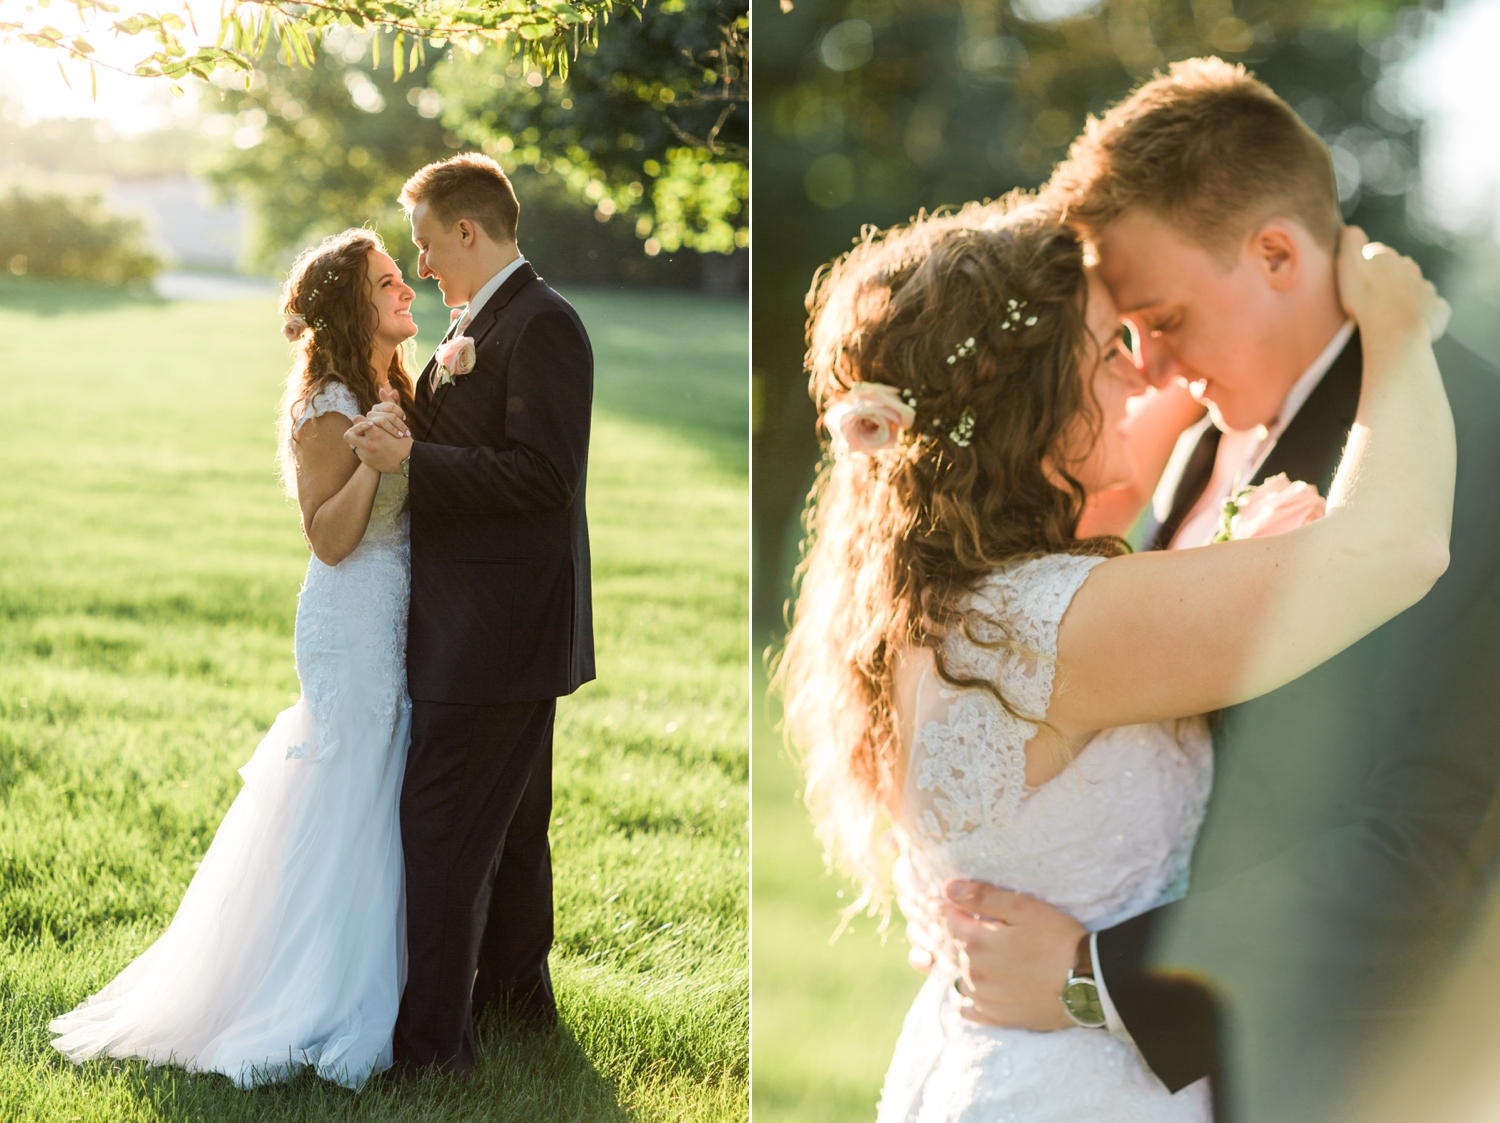 Community_Life_Center_Indianapolis_Indiana_Wedding_Photographer_Chloe_Luka_Photography_6989.jpg